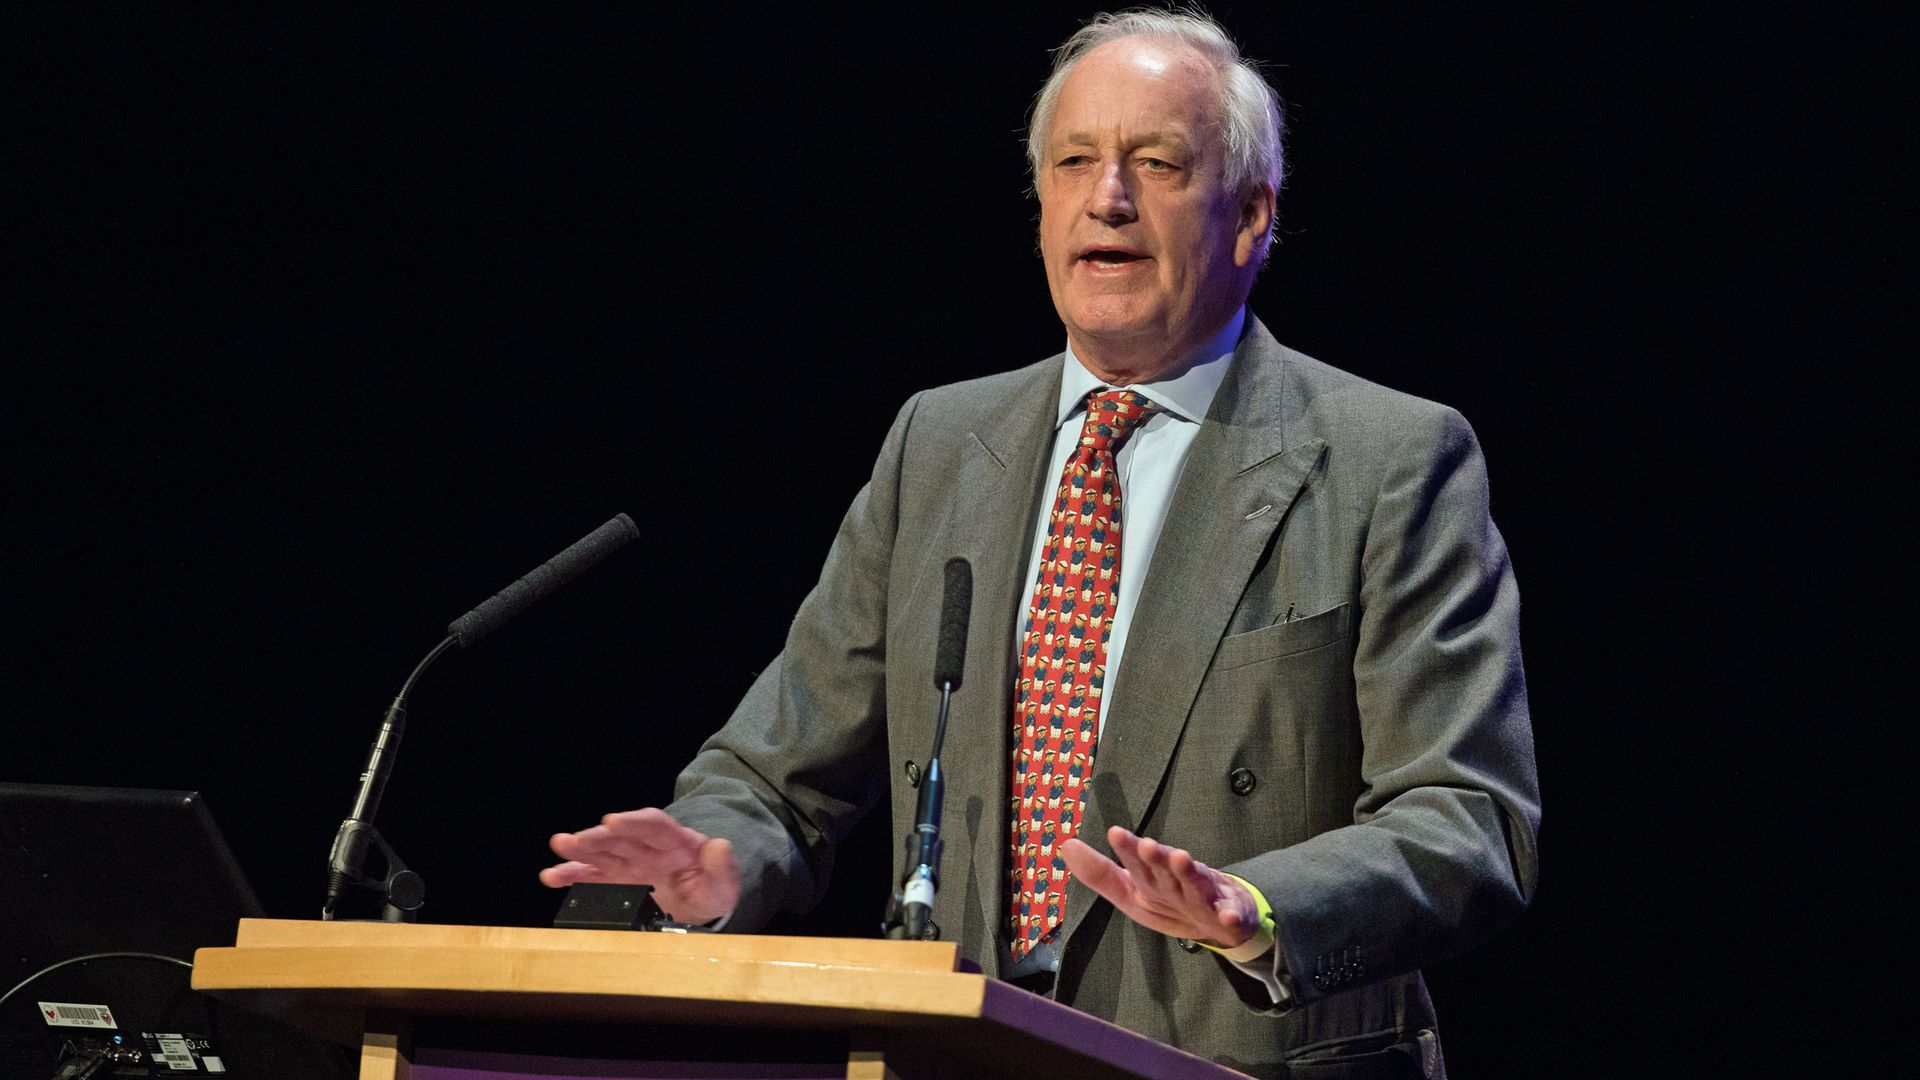 """UKIP leader Neil Hamilton said a candidate's offensive tweets about Islam were """"of no consequence"""" to the election - Credit: PA"""